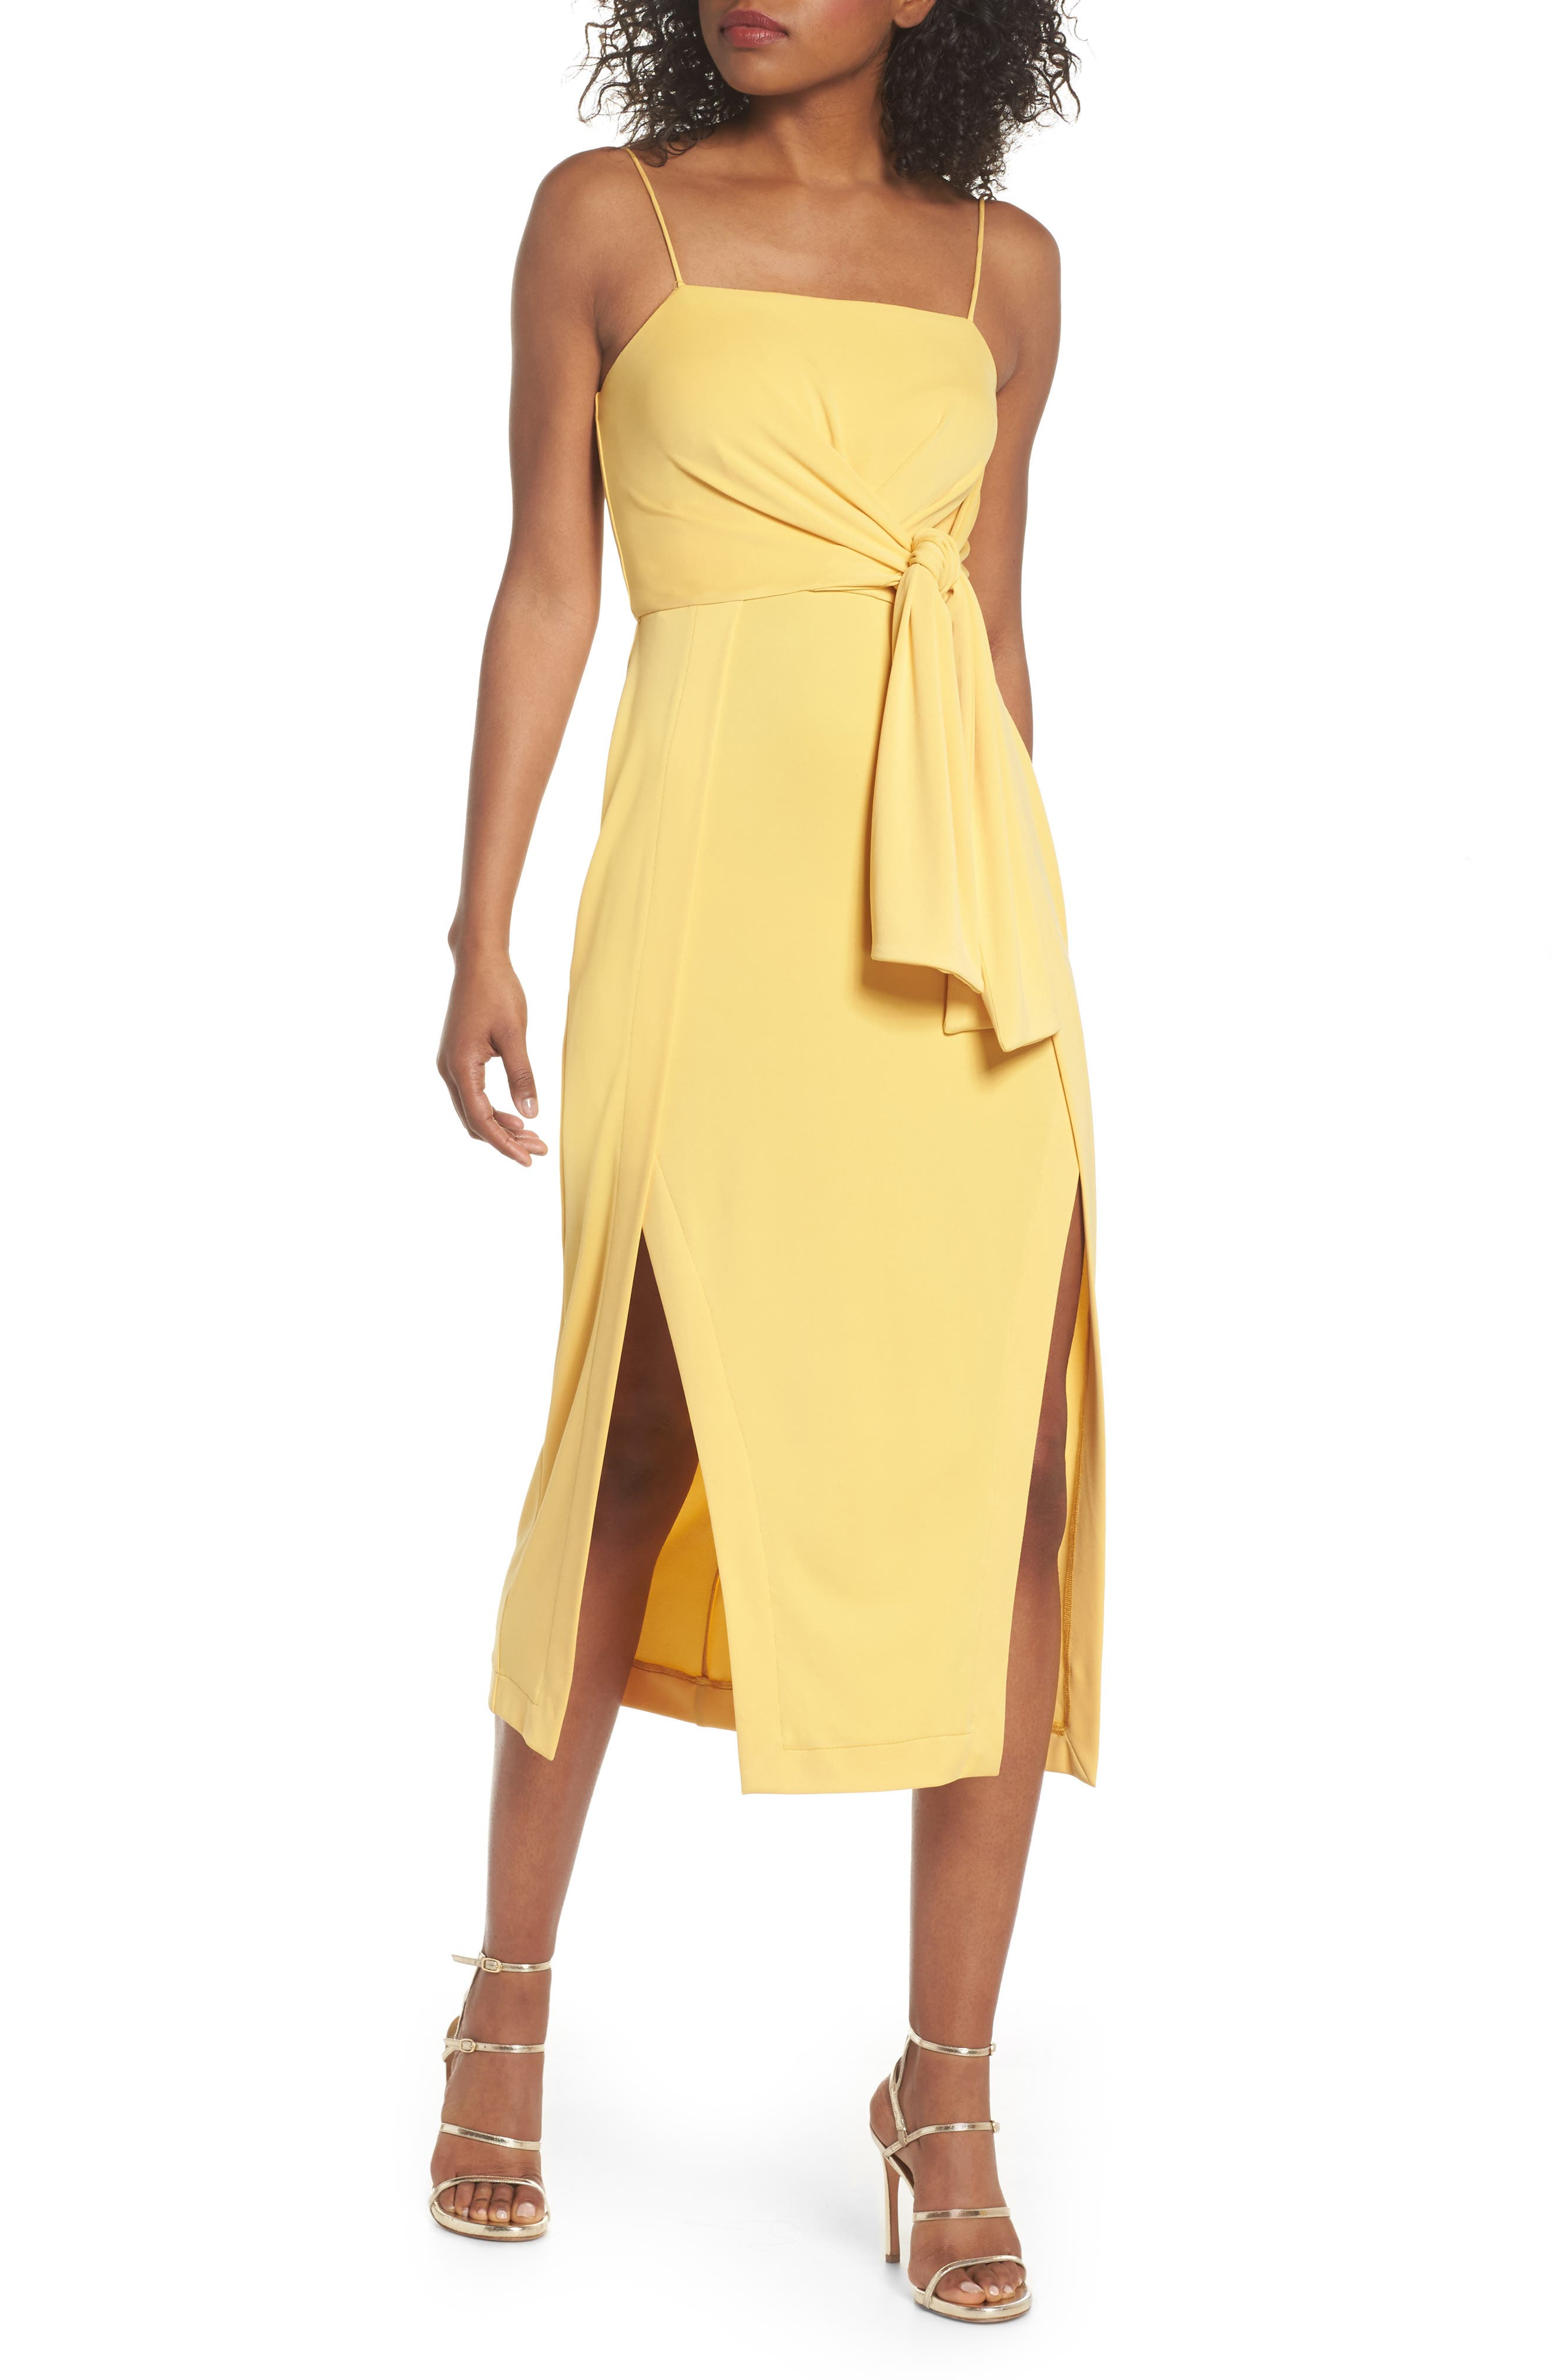 Recollect Slinky Side Tie Midi Dress,                             Main thumbnail 1, color,                             740